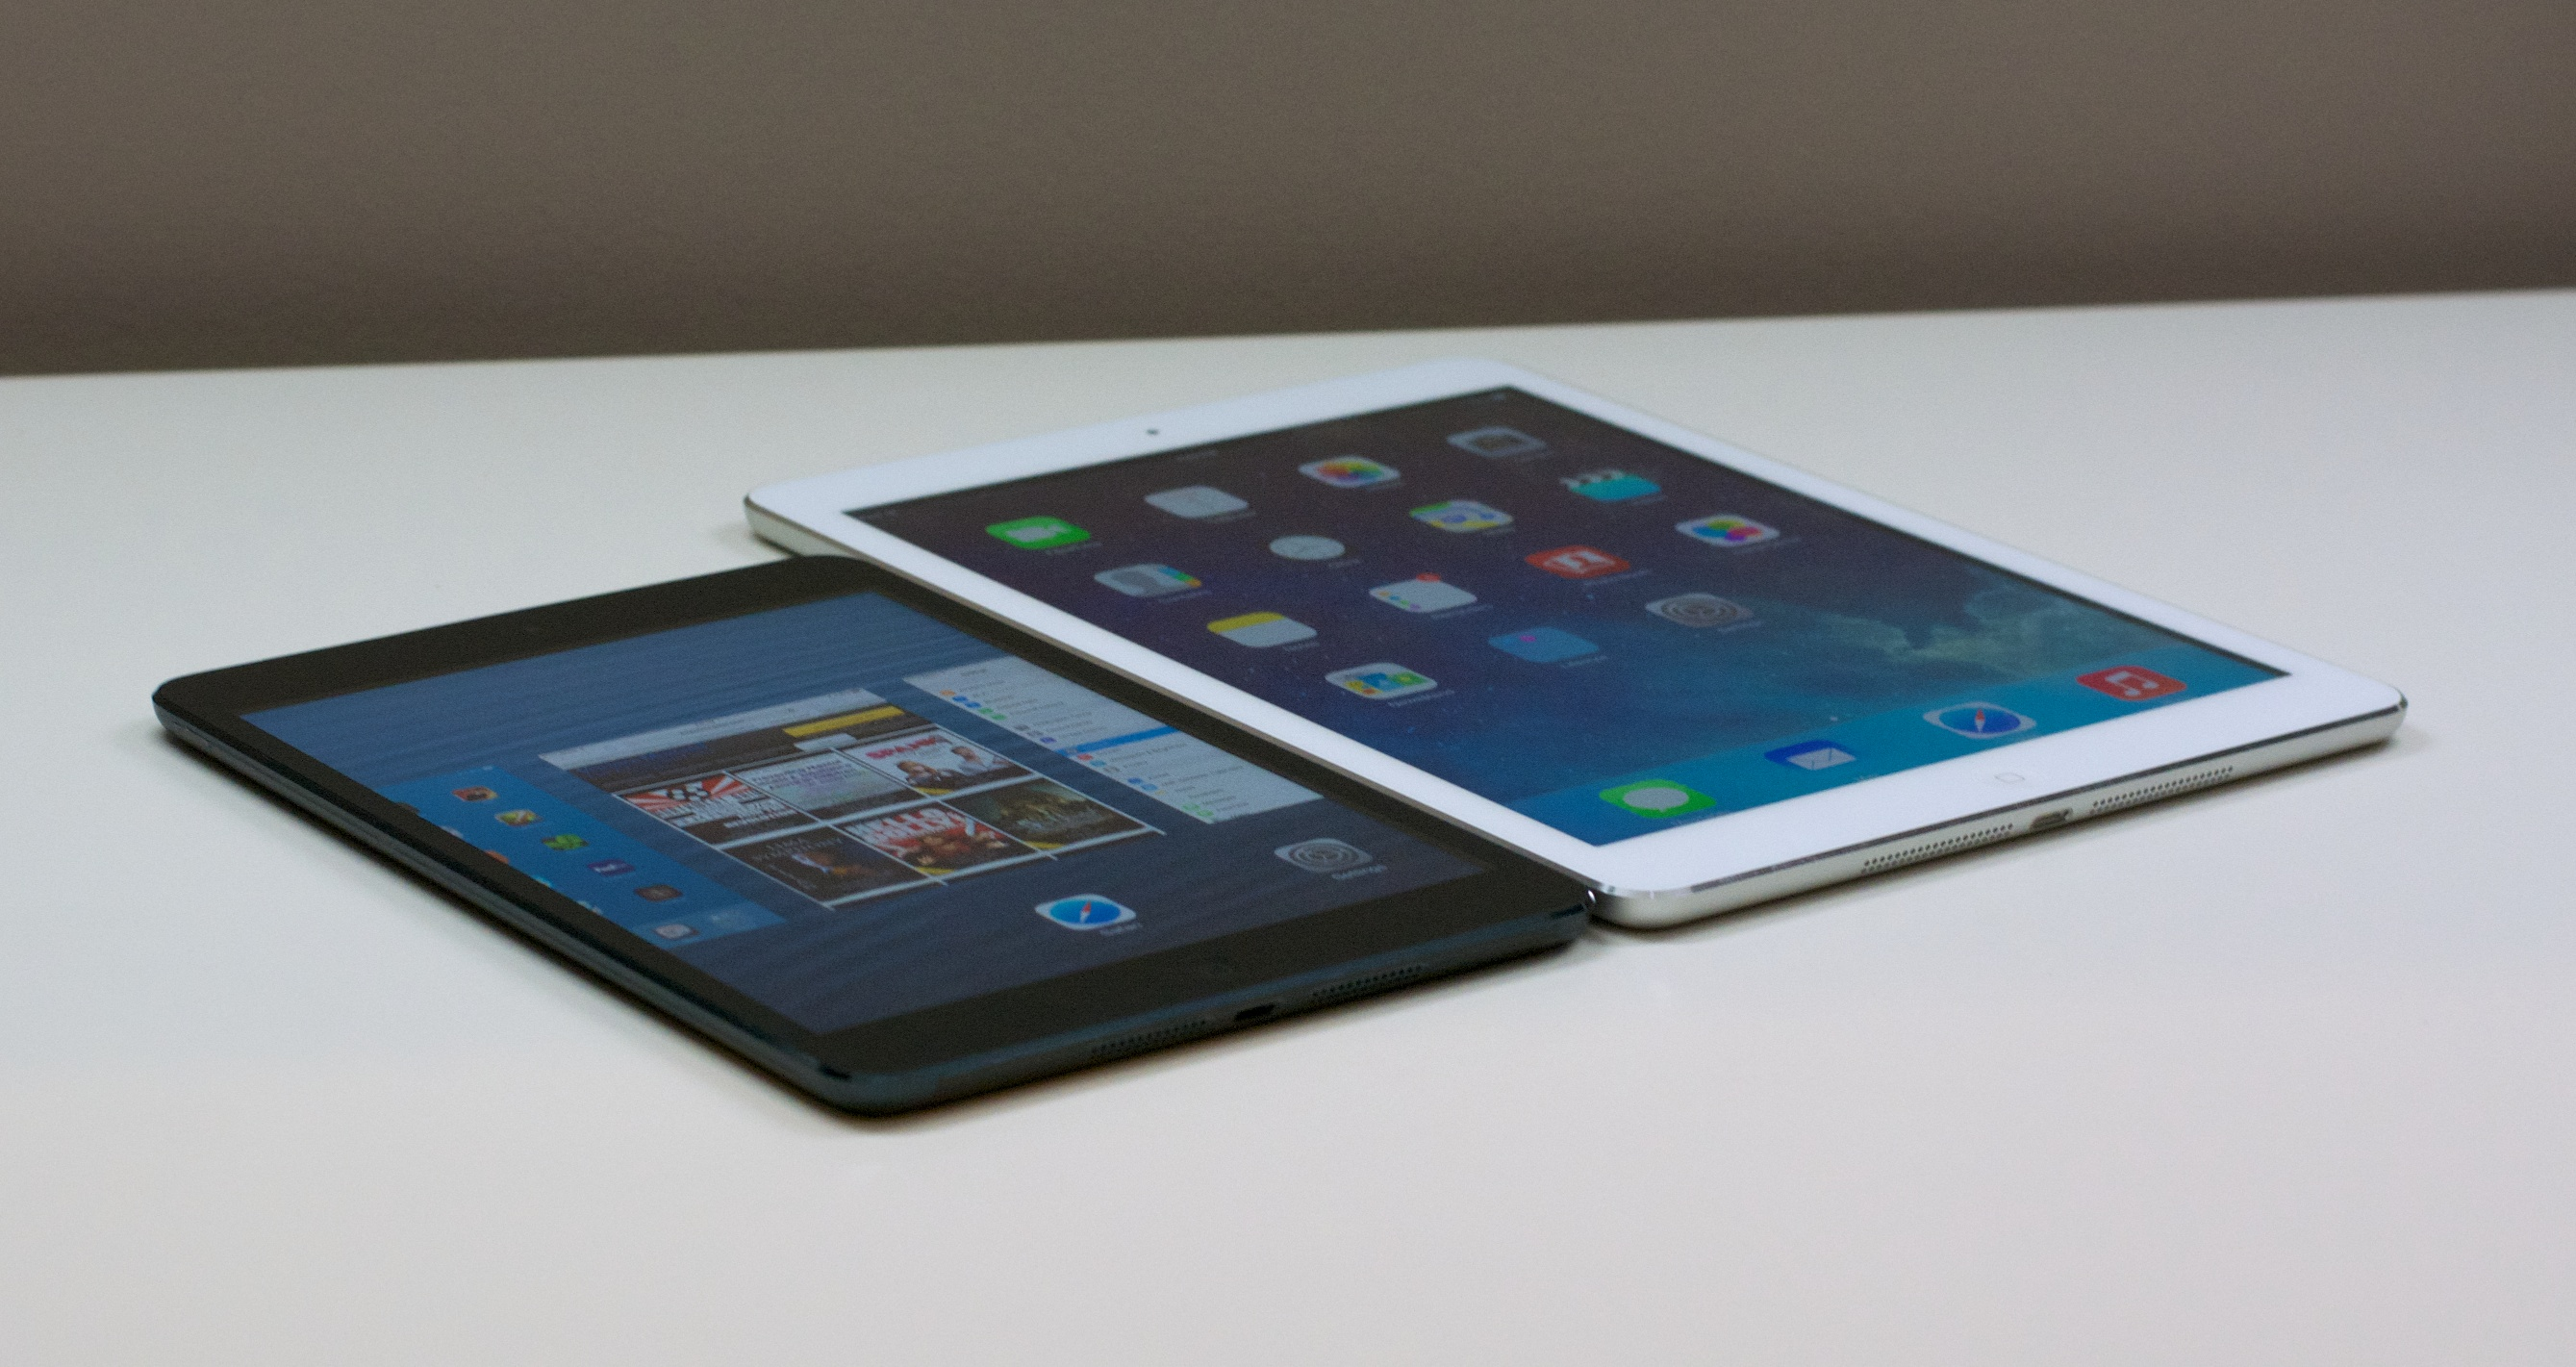 What Not to Expect After iOS 7.0.4: iPad & iPad mini